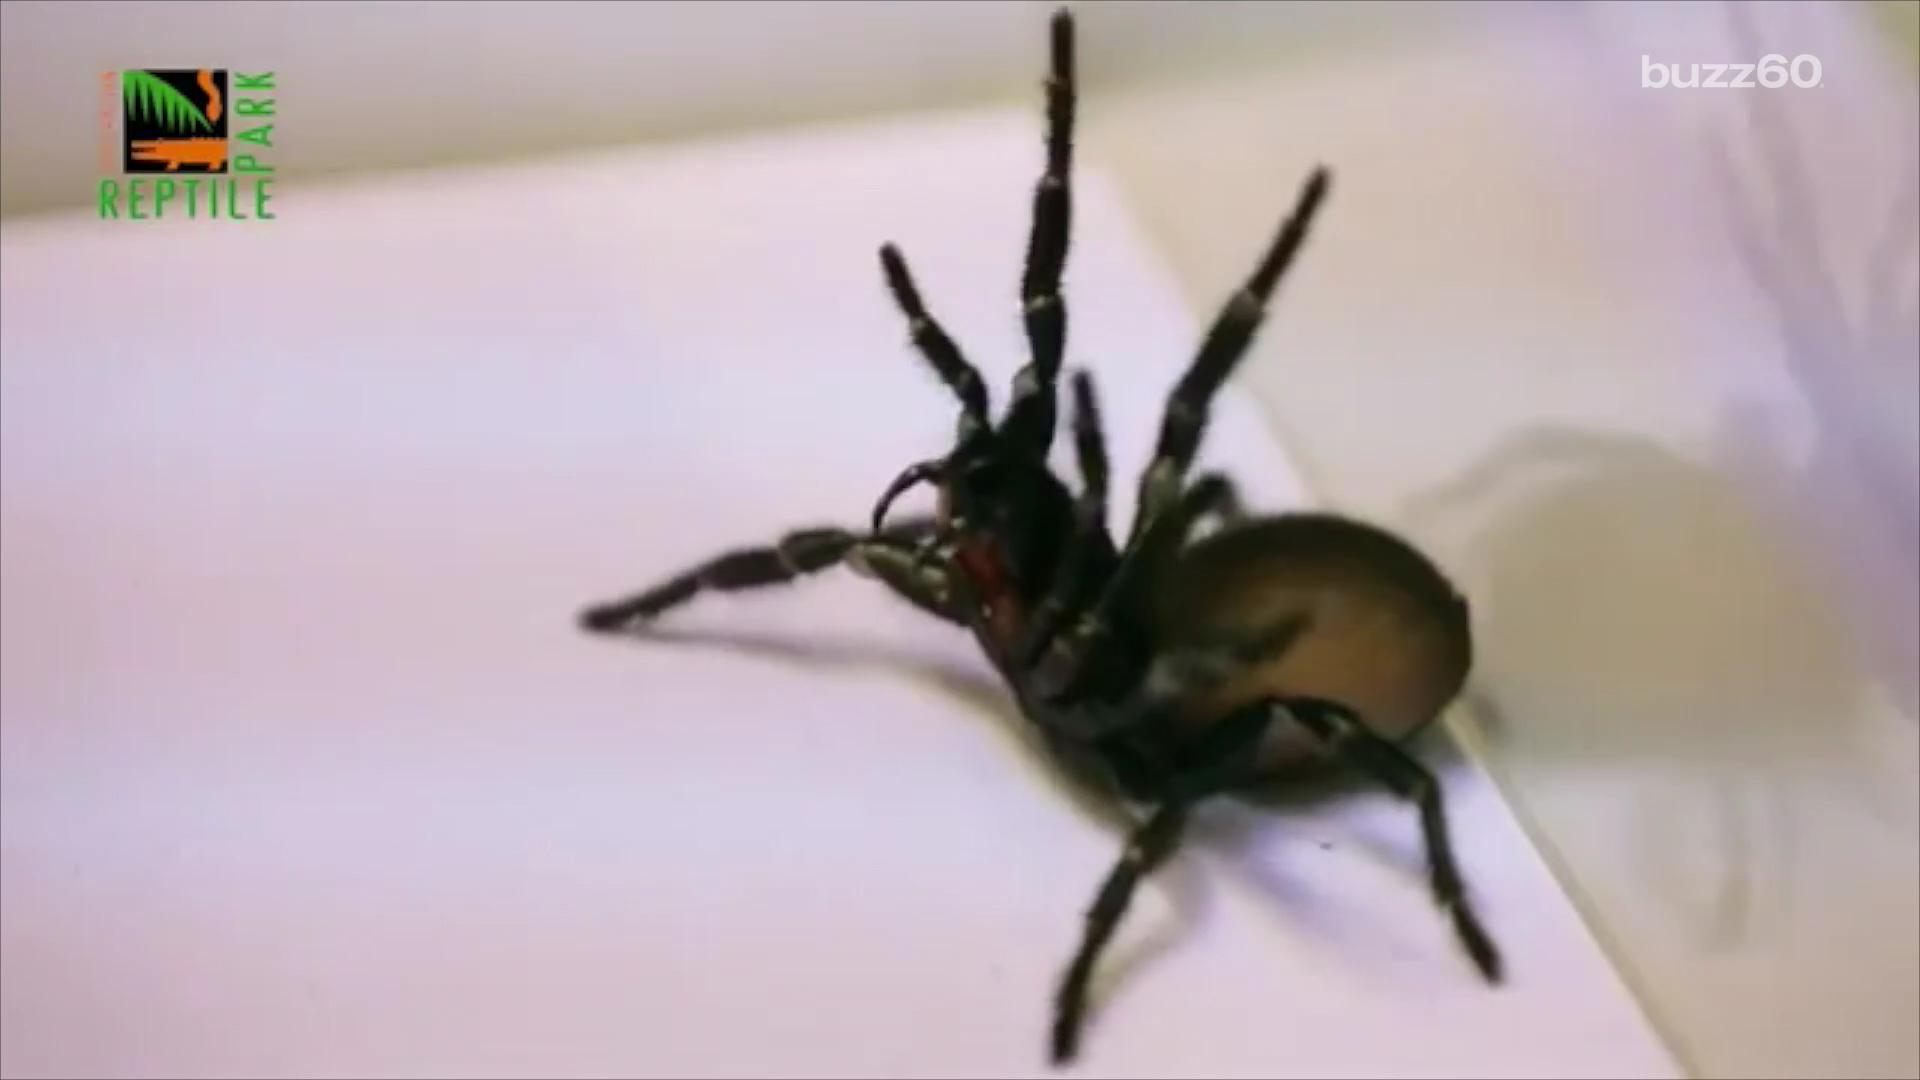 Australians asked to catch deadly spiders to save themselves